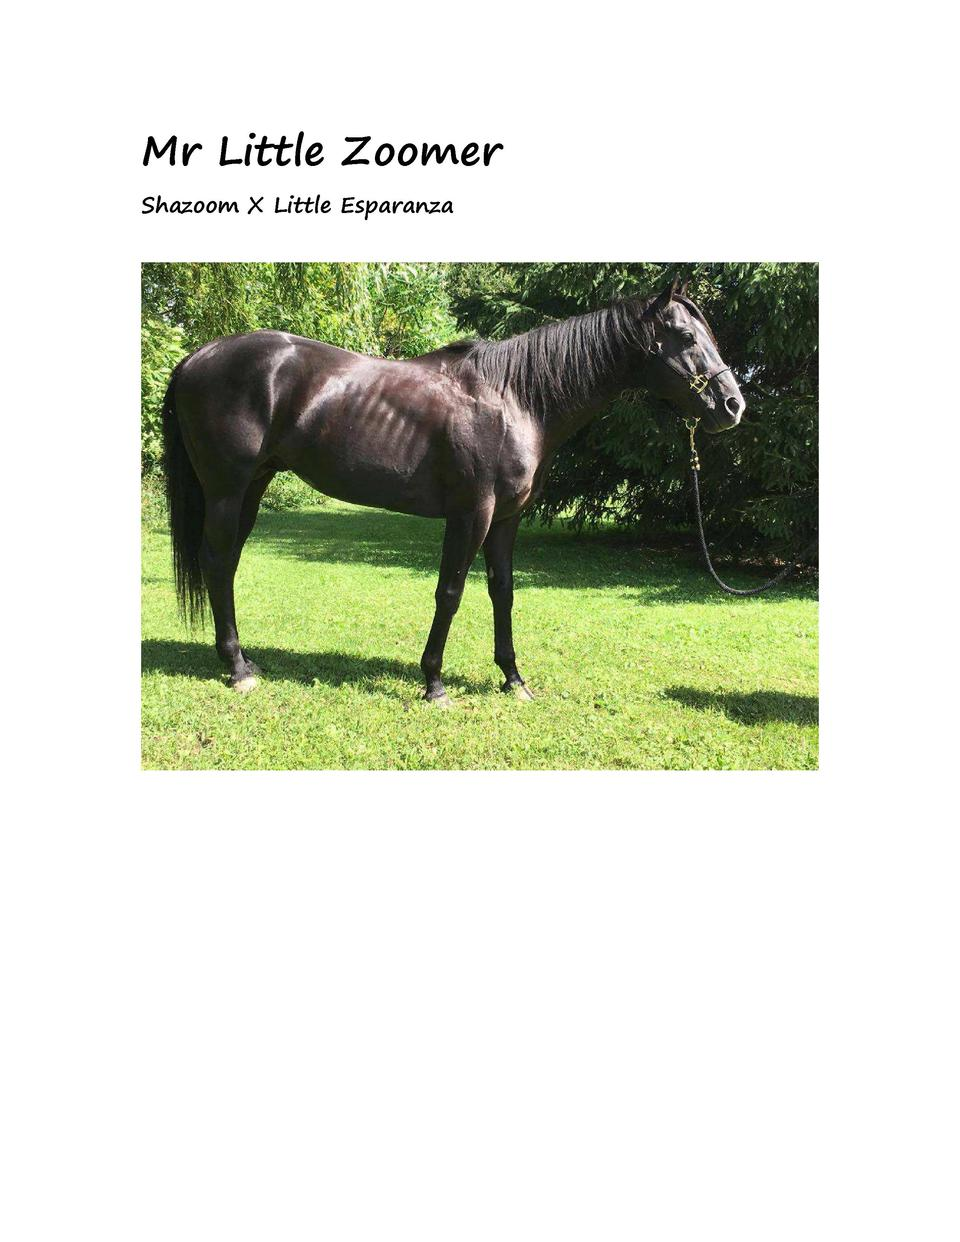 Mr Little Zoomer Shazoom X Little Esparanza